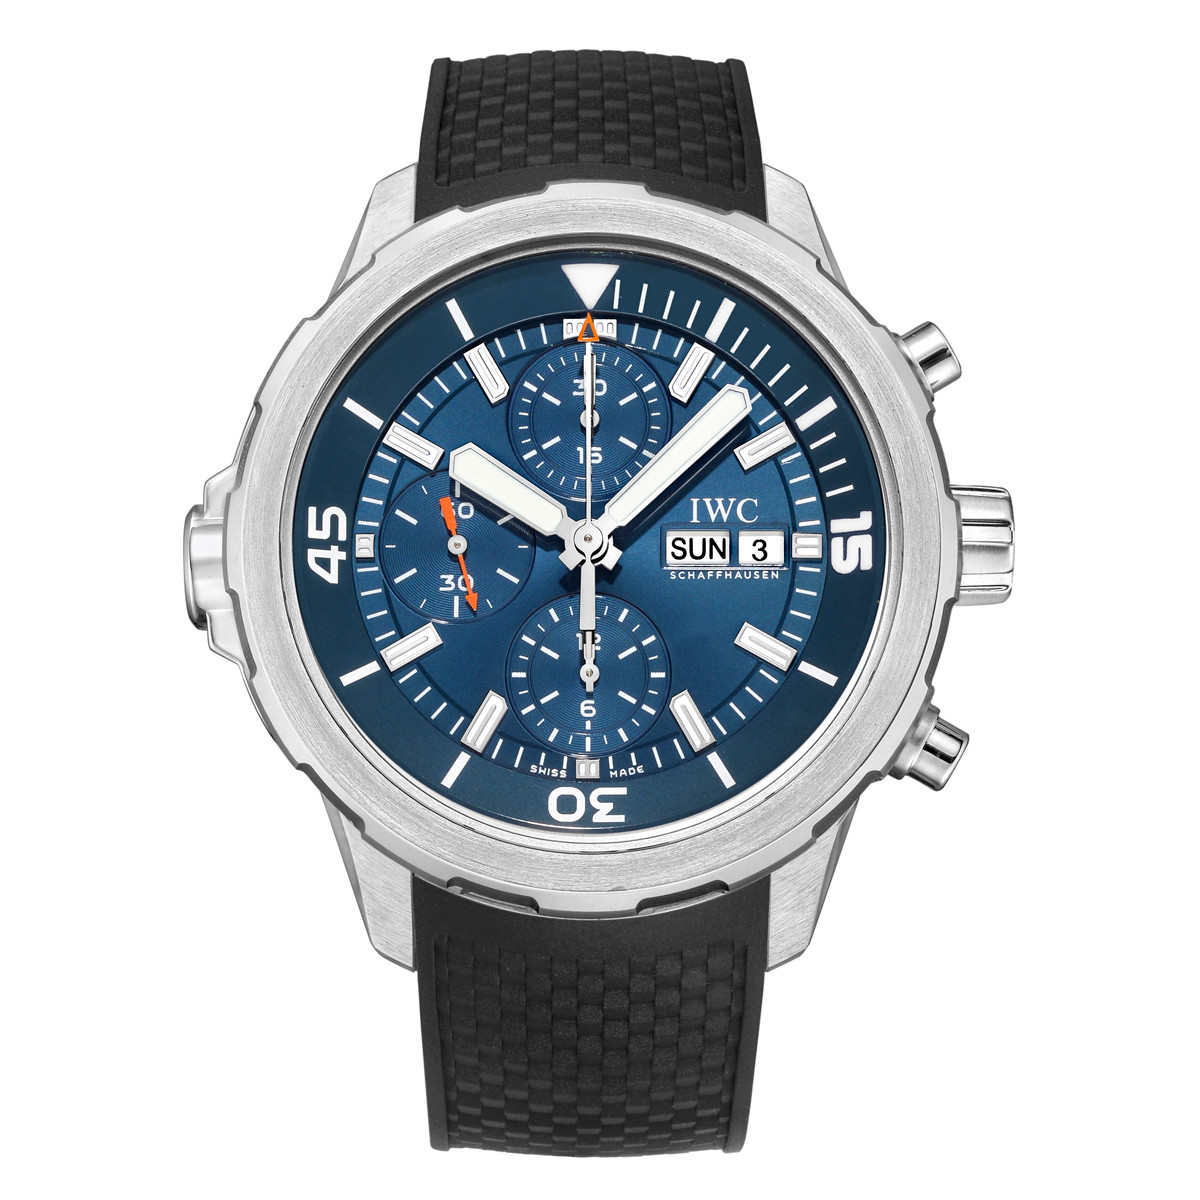 "Aquatimer Chronograph ""Jacques-Yves Cousteau"" (IW376805)"